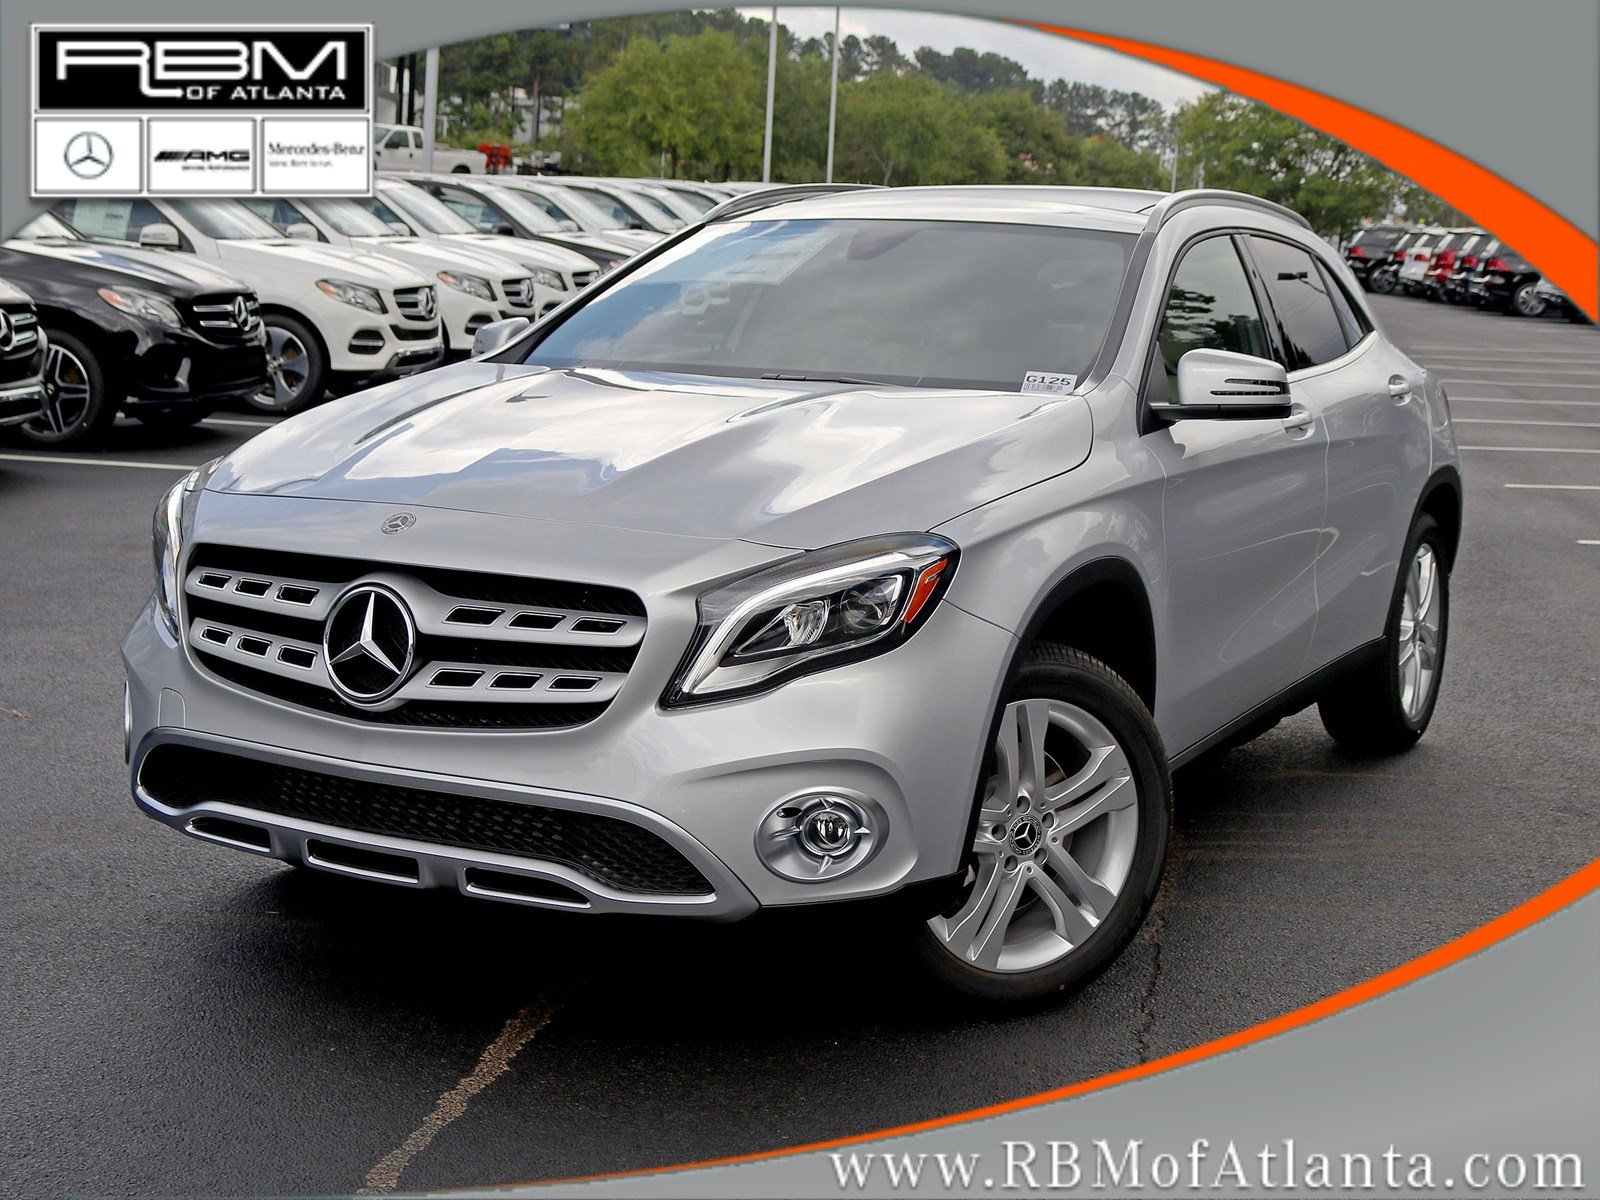 new 2019 mercedes-benz gla gla 250 suv in atlanta #g125 | rbm of atlanta